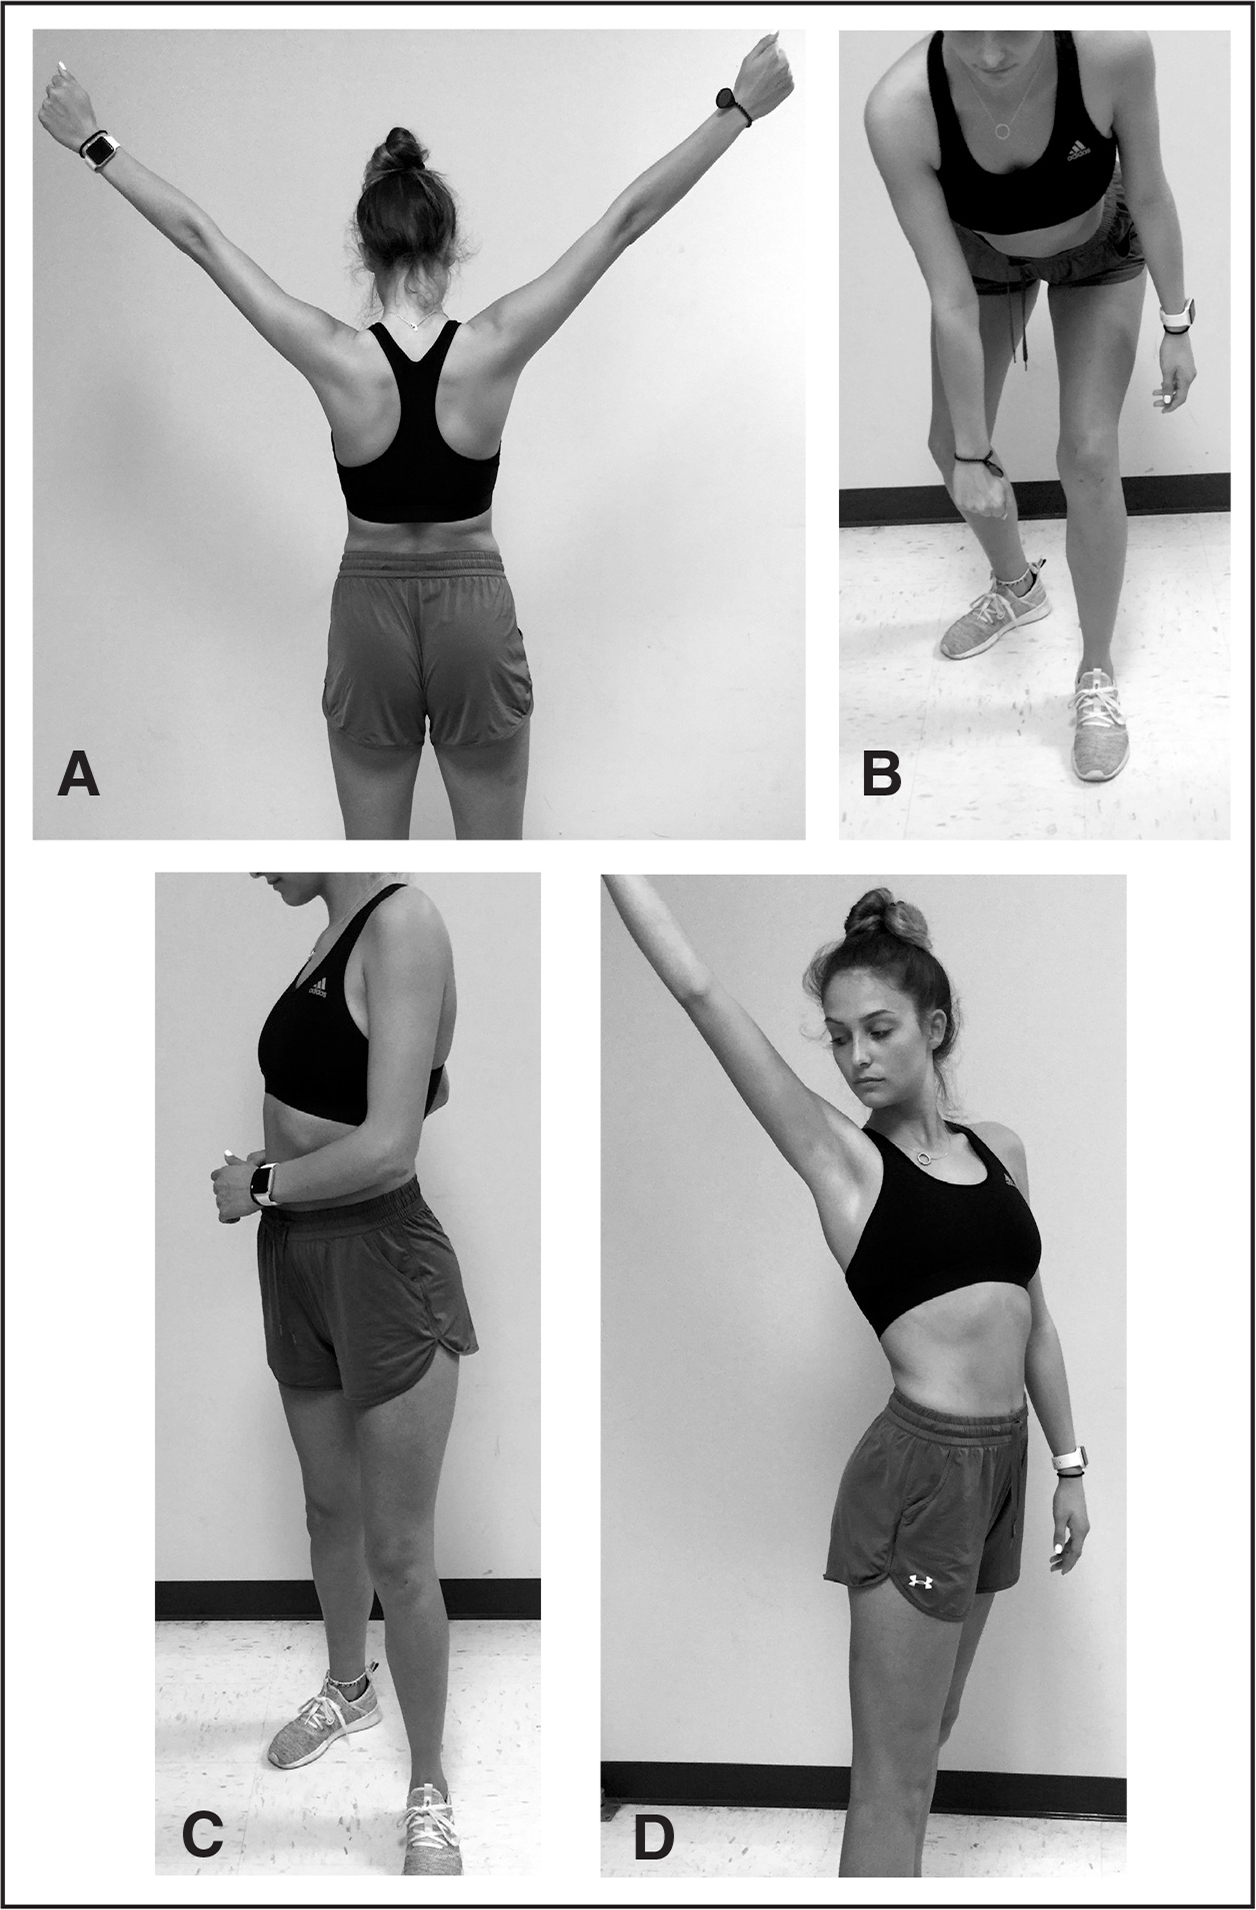 """(A) Long lever """"Y"""" exercise. Short lever lawnmower exercise (B) beginning with trunk and knee flexion and (C) ending with patient standing erect while using trunk rotation to achieve scapular retraction. (D) Combination of long lever exercise with trunk rotation."""